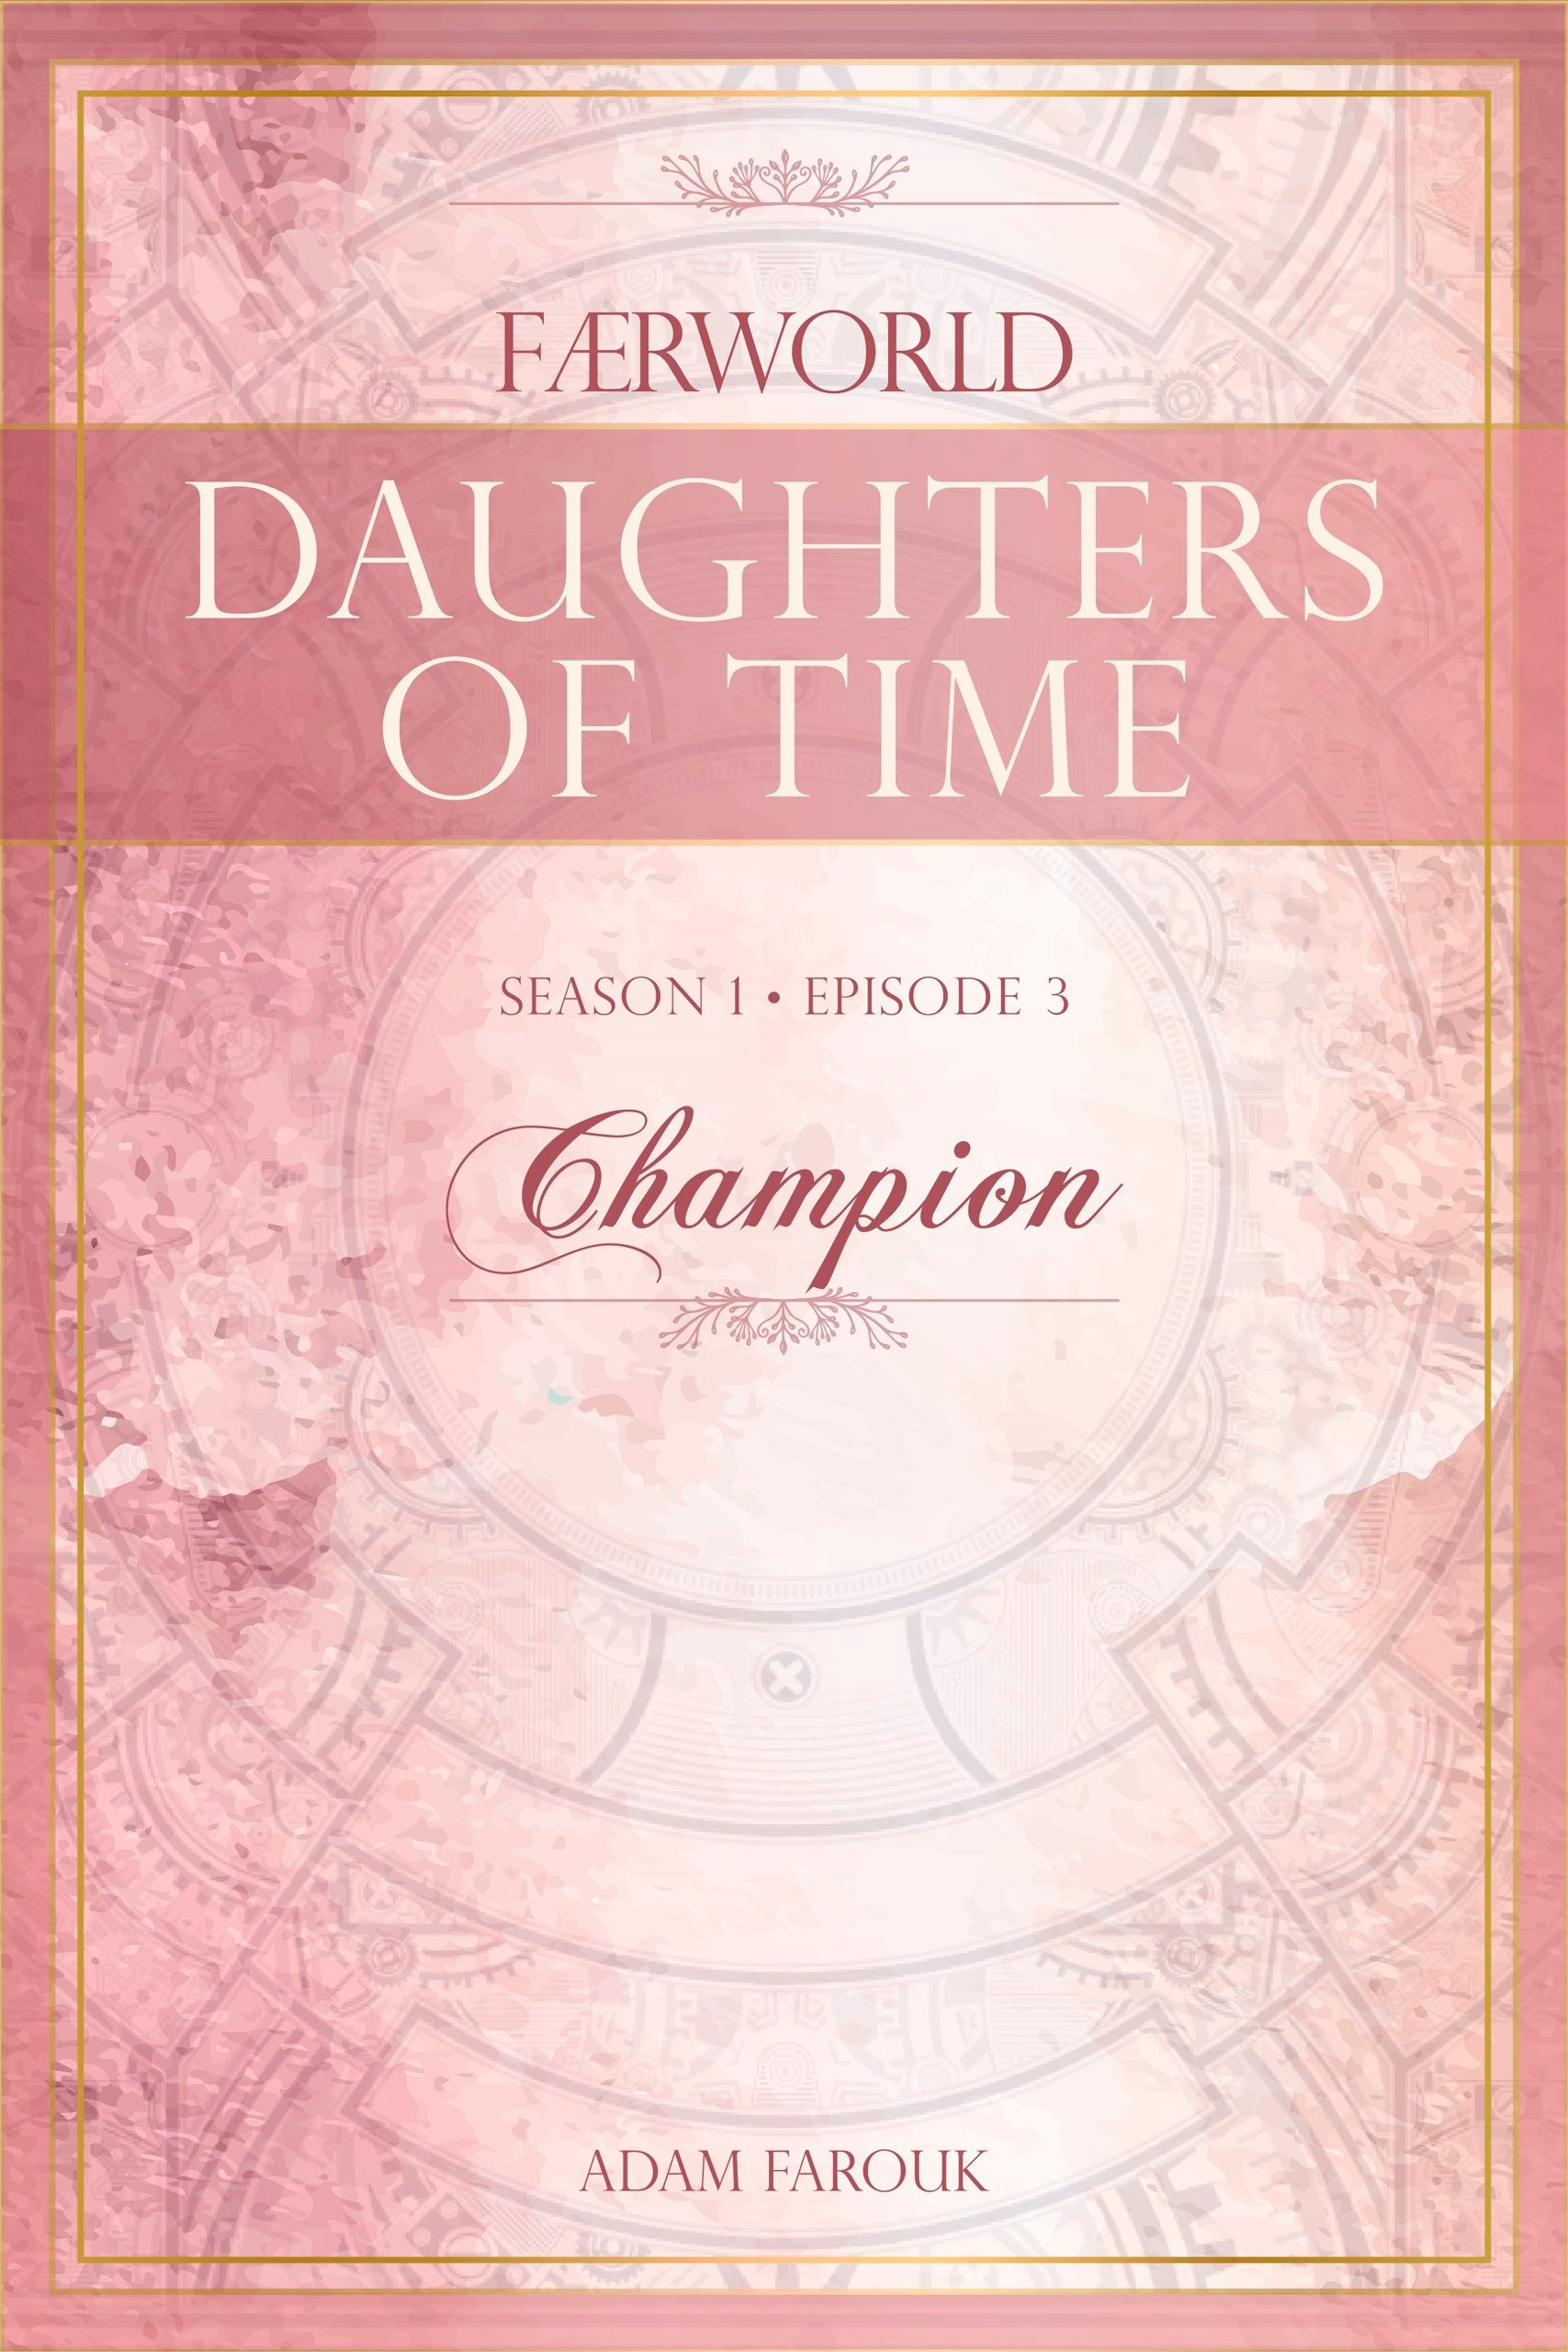 Daughters of Time, Season 1, Episode 3: Champion